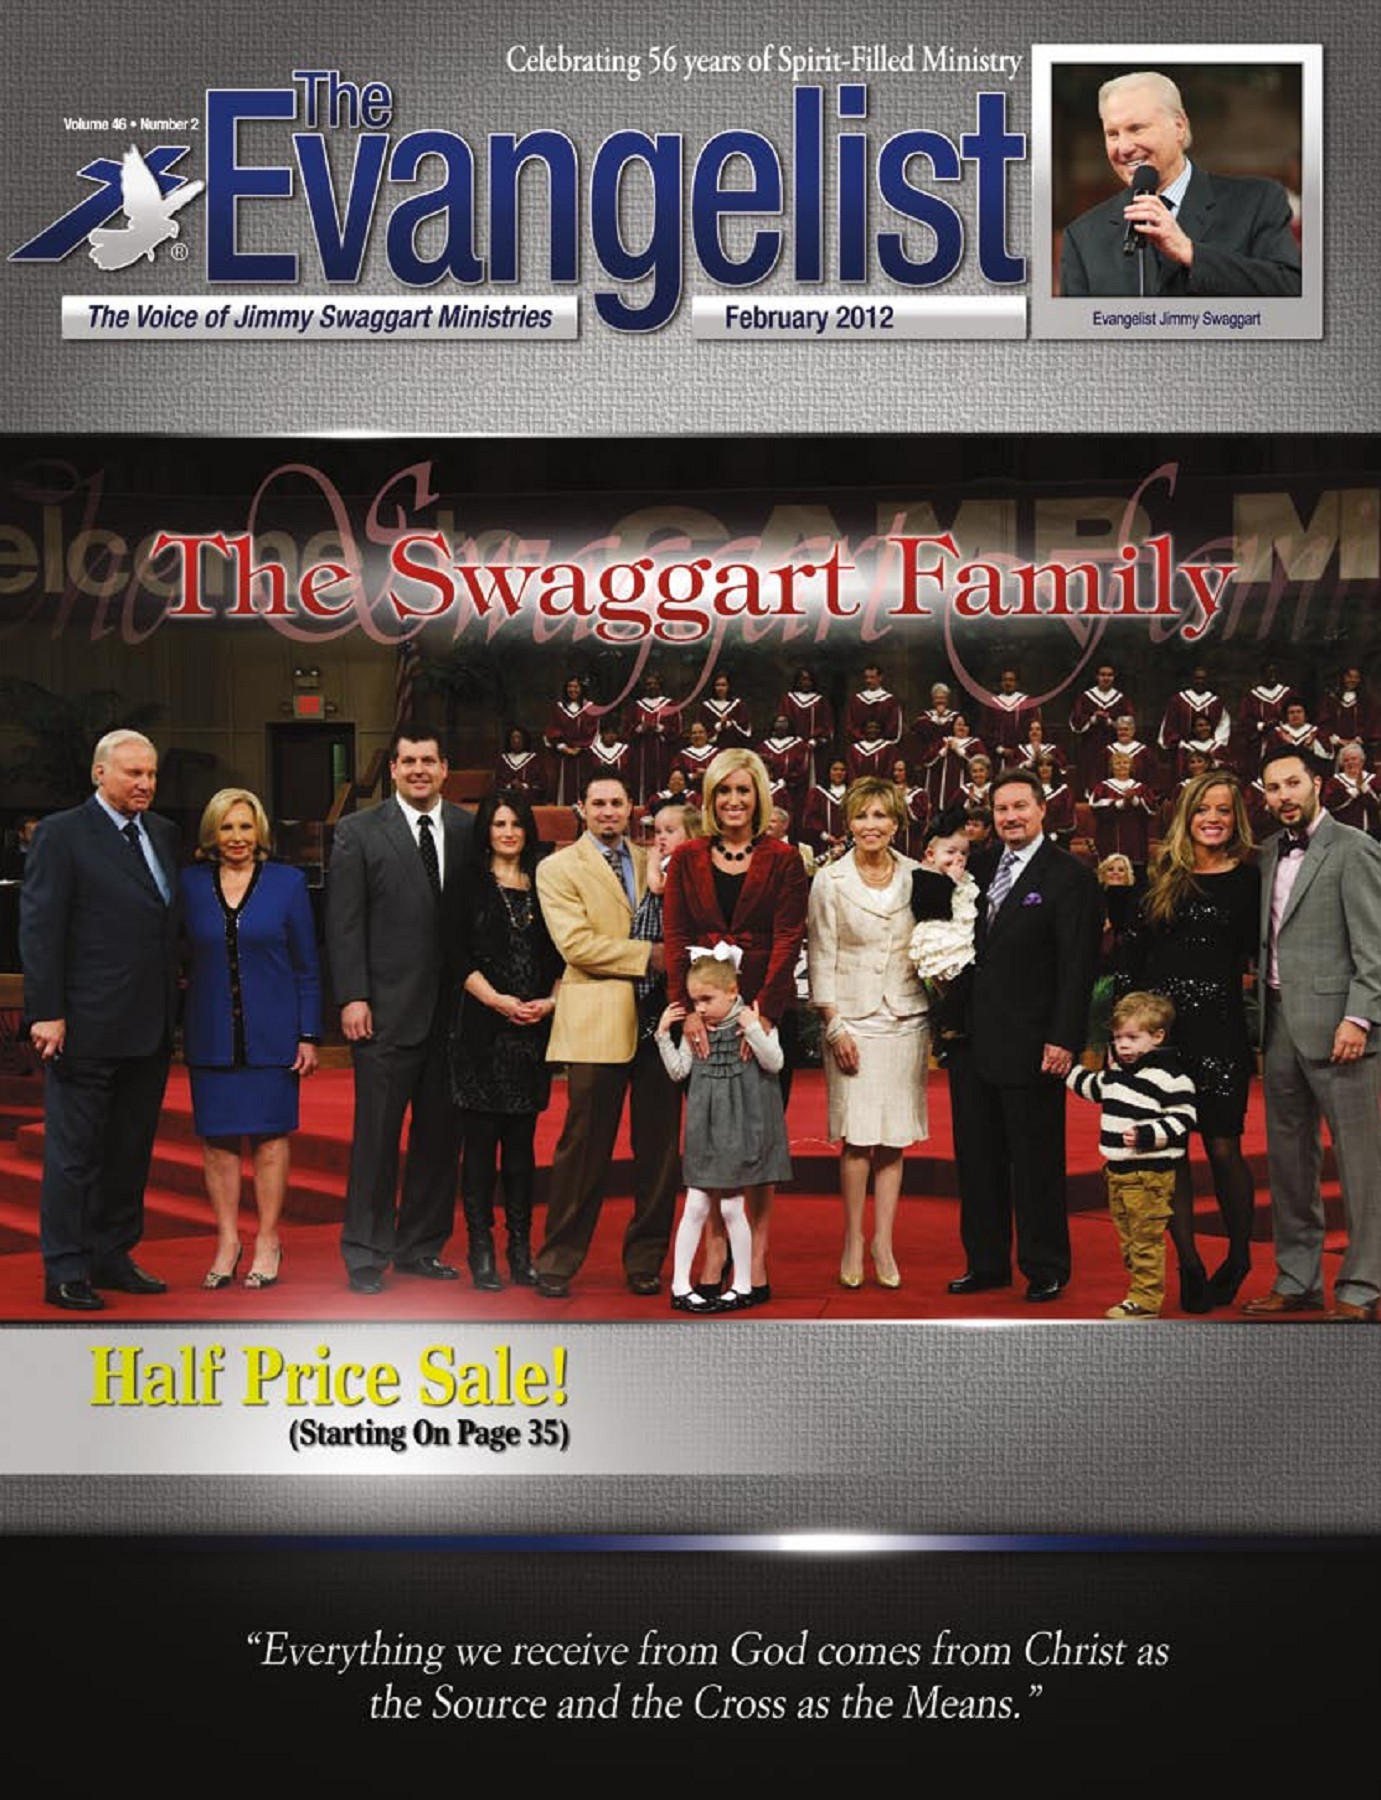 The Evangelist February, 2012 - Jimmy Swaggart Pages 1 - 44 - Text